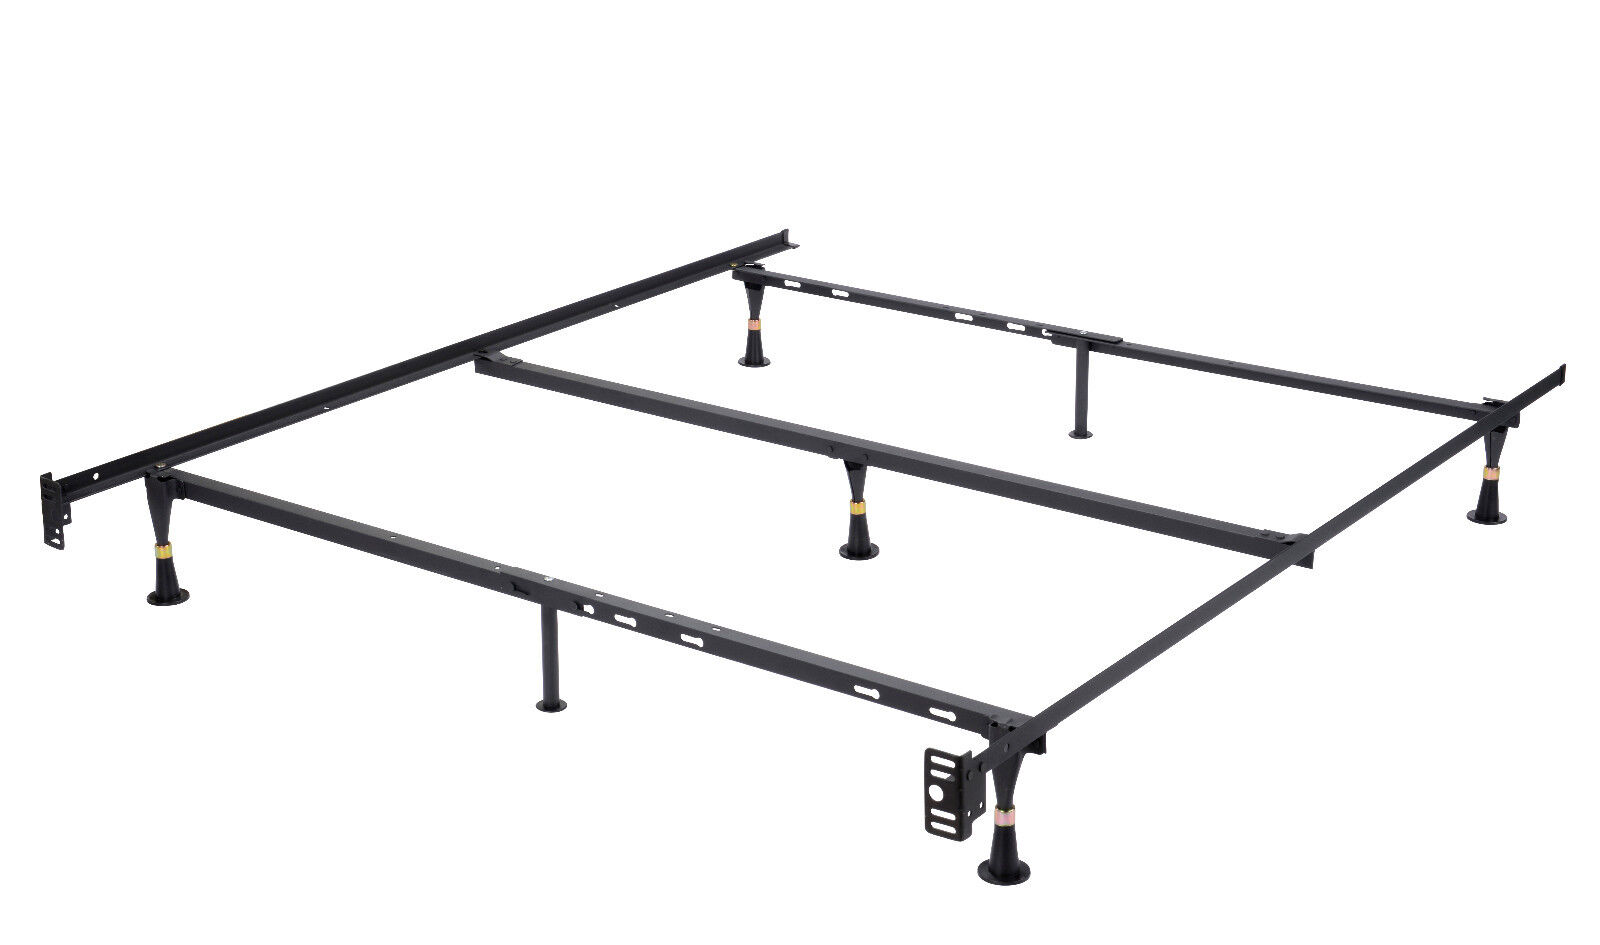 Steel Bed Frames Queen Metal Bed Frames Queen Size Extra: 7-Leg Heavy Duty Metal Queen Size Bed Frame With Center